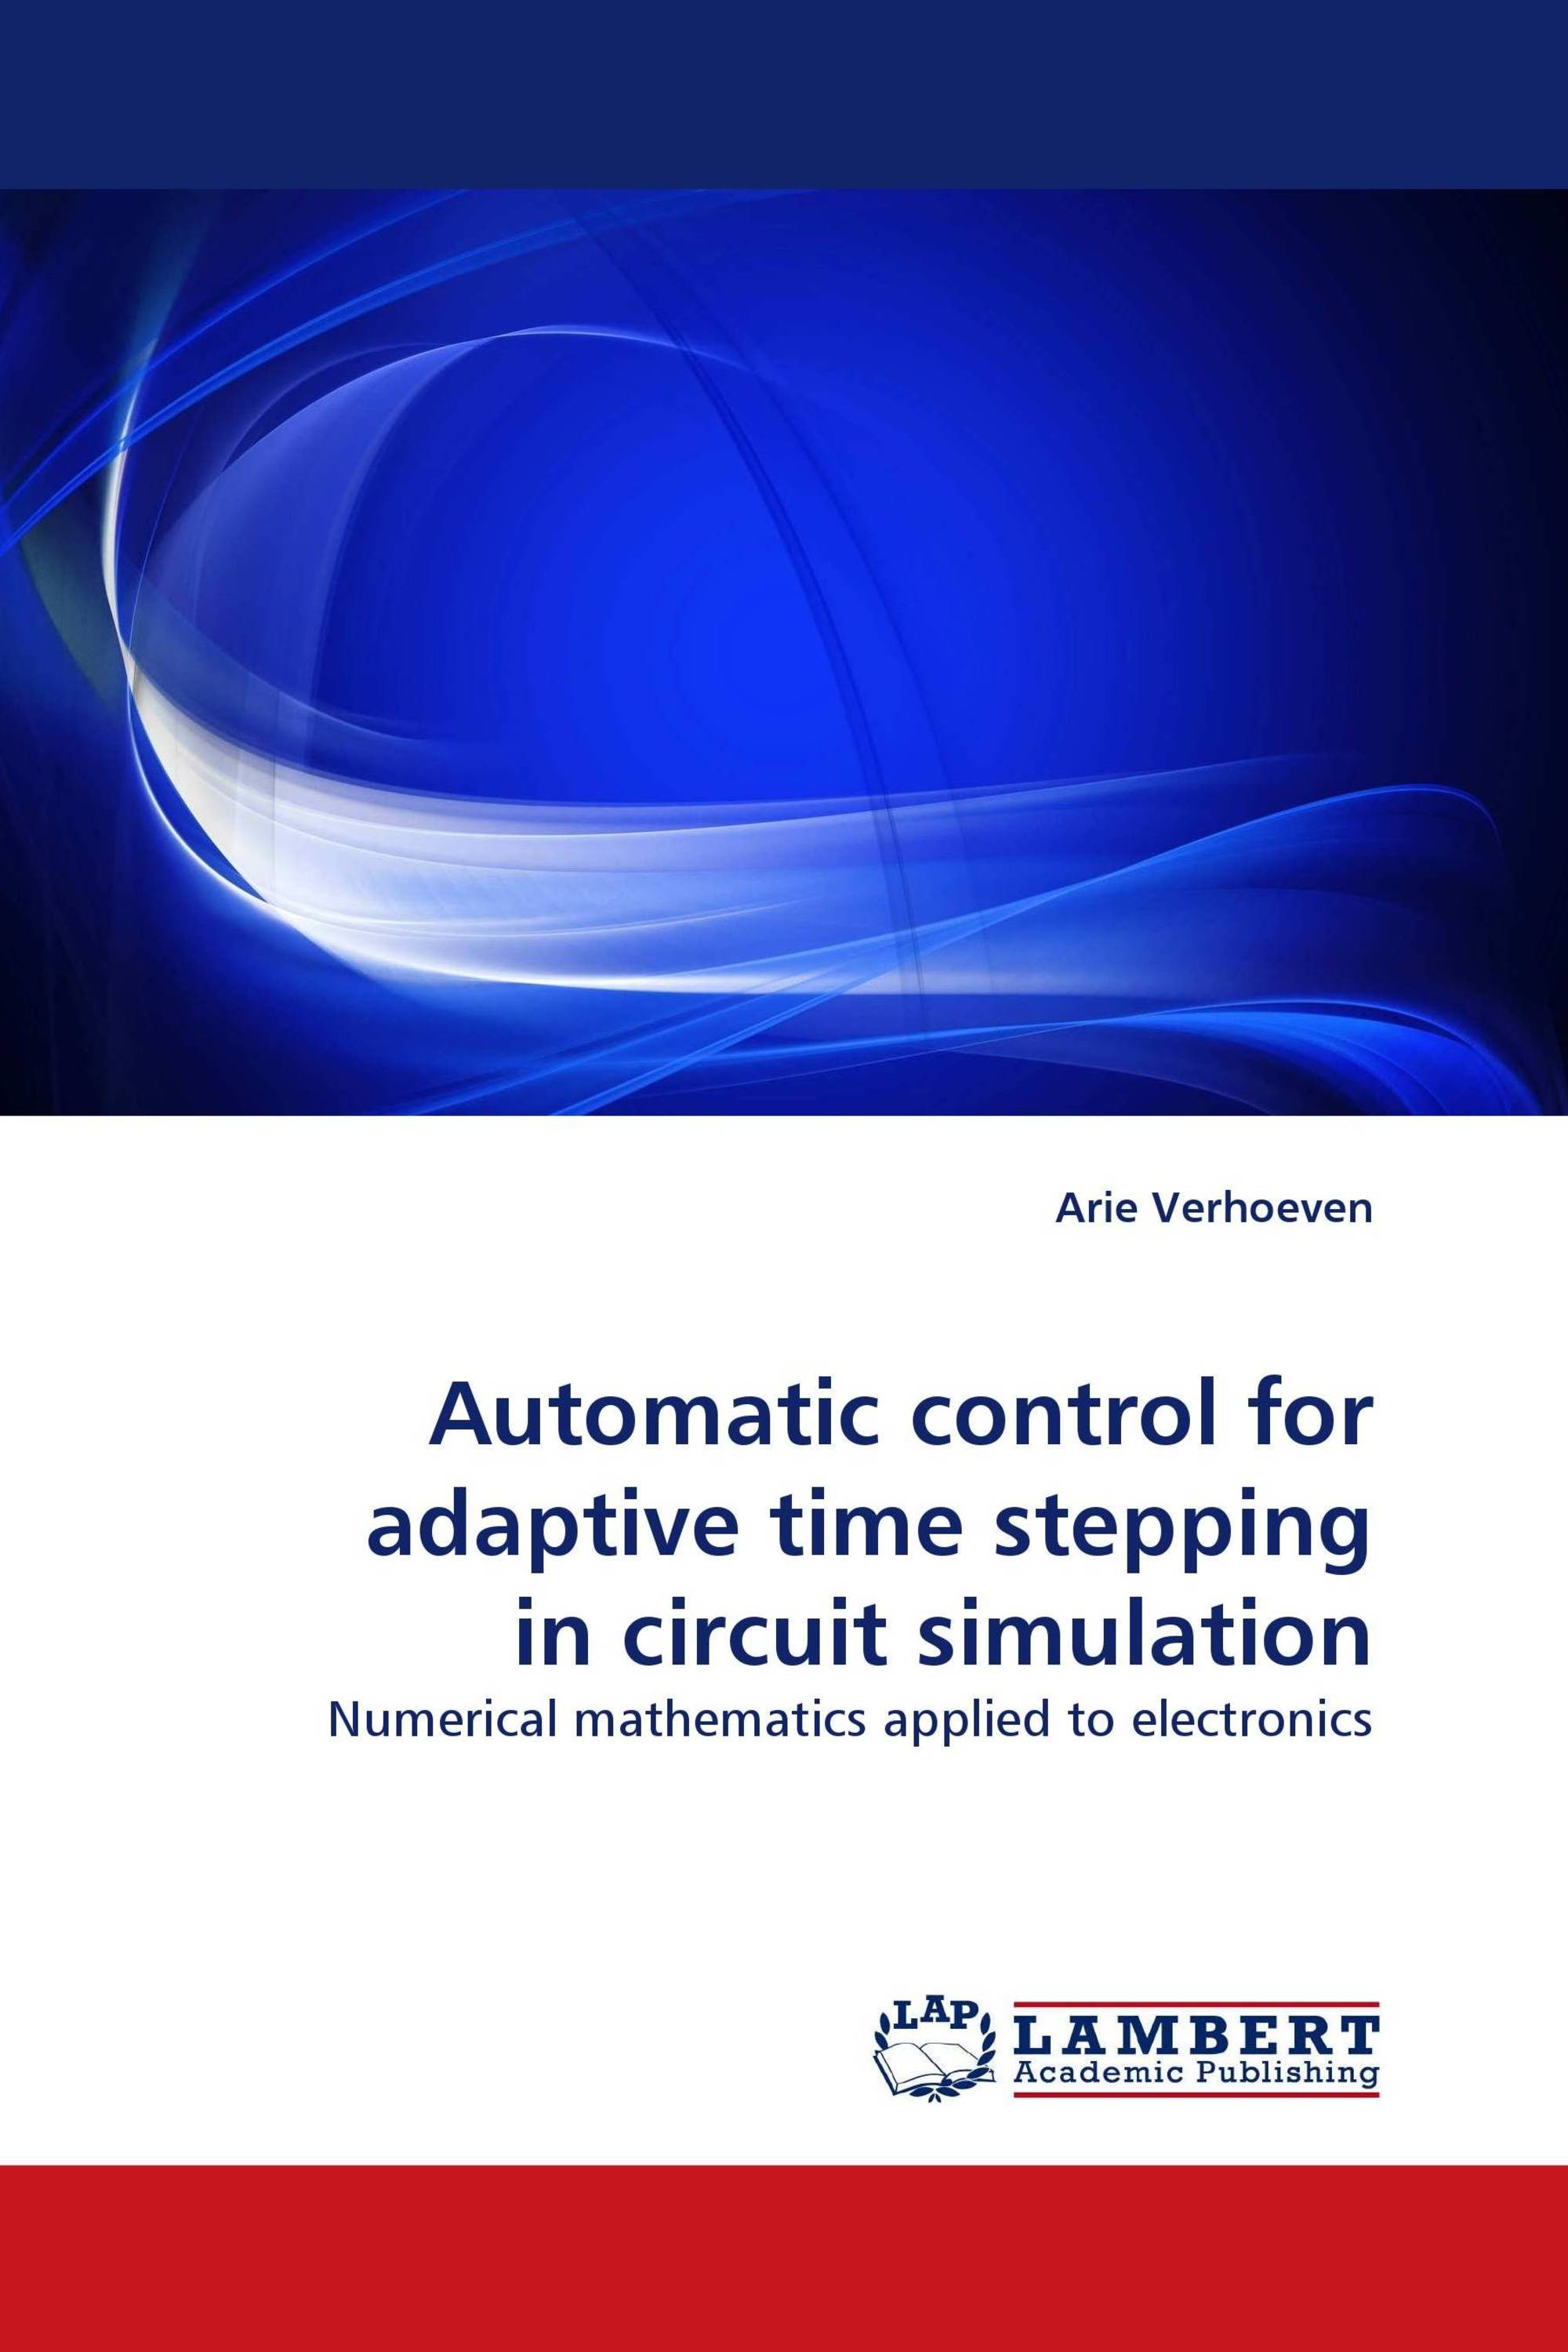 Automatic control for adaptive time stepping in circuit simulation